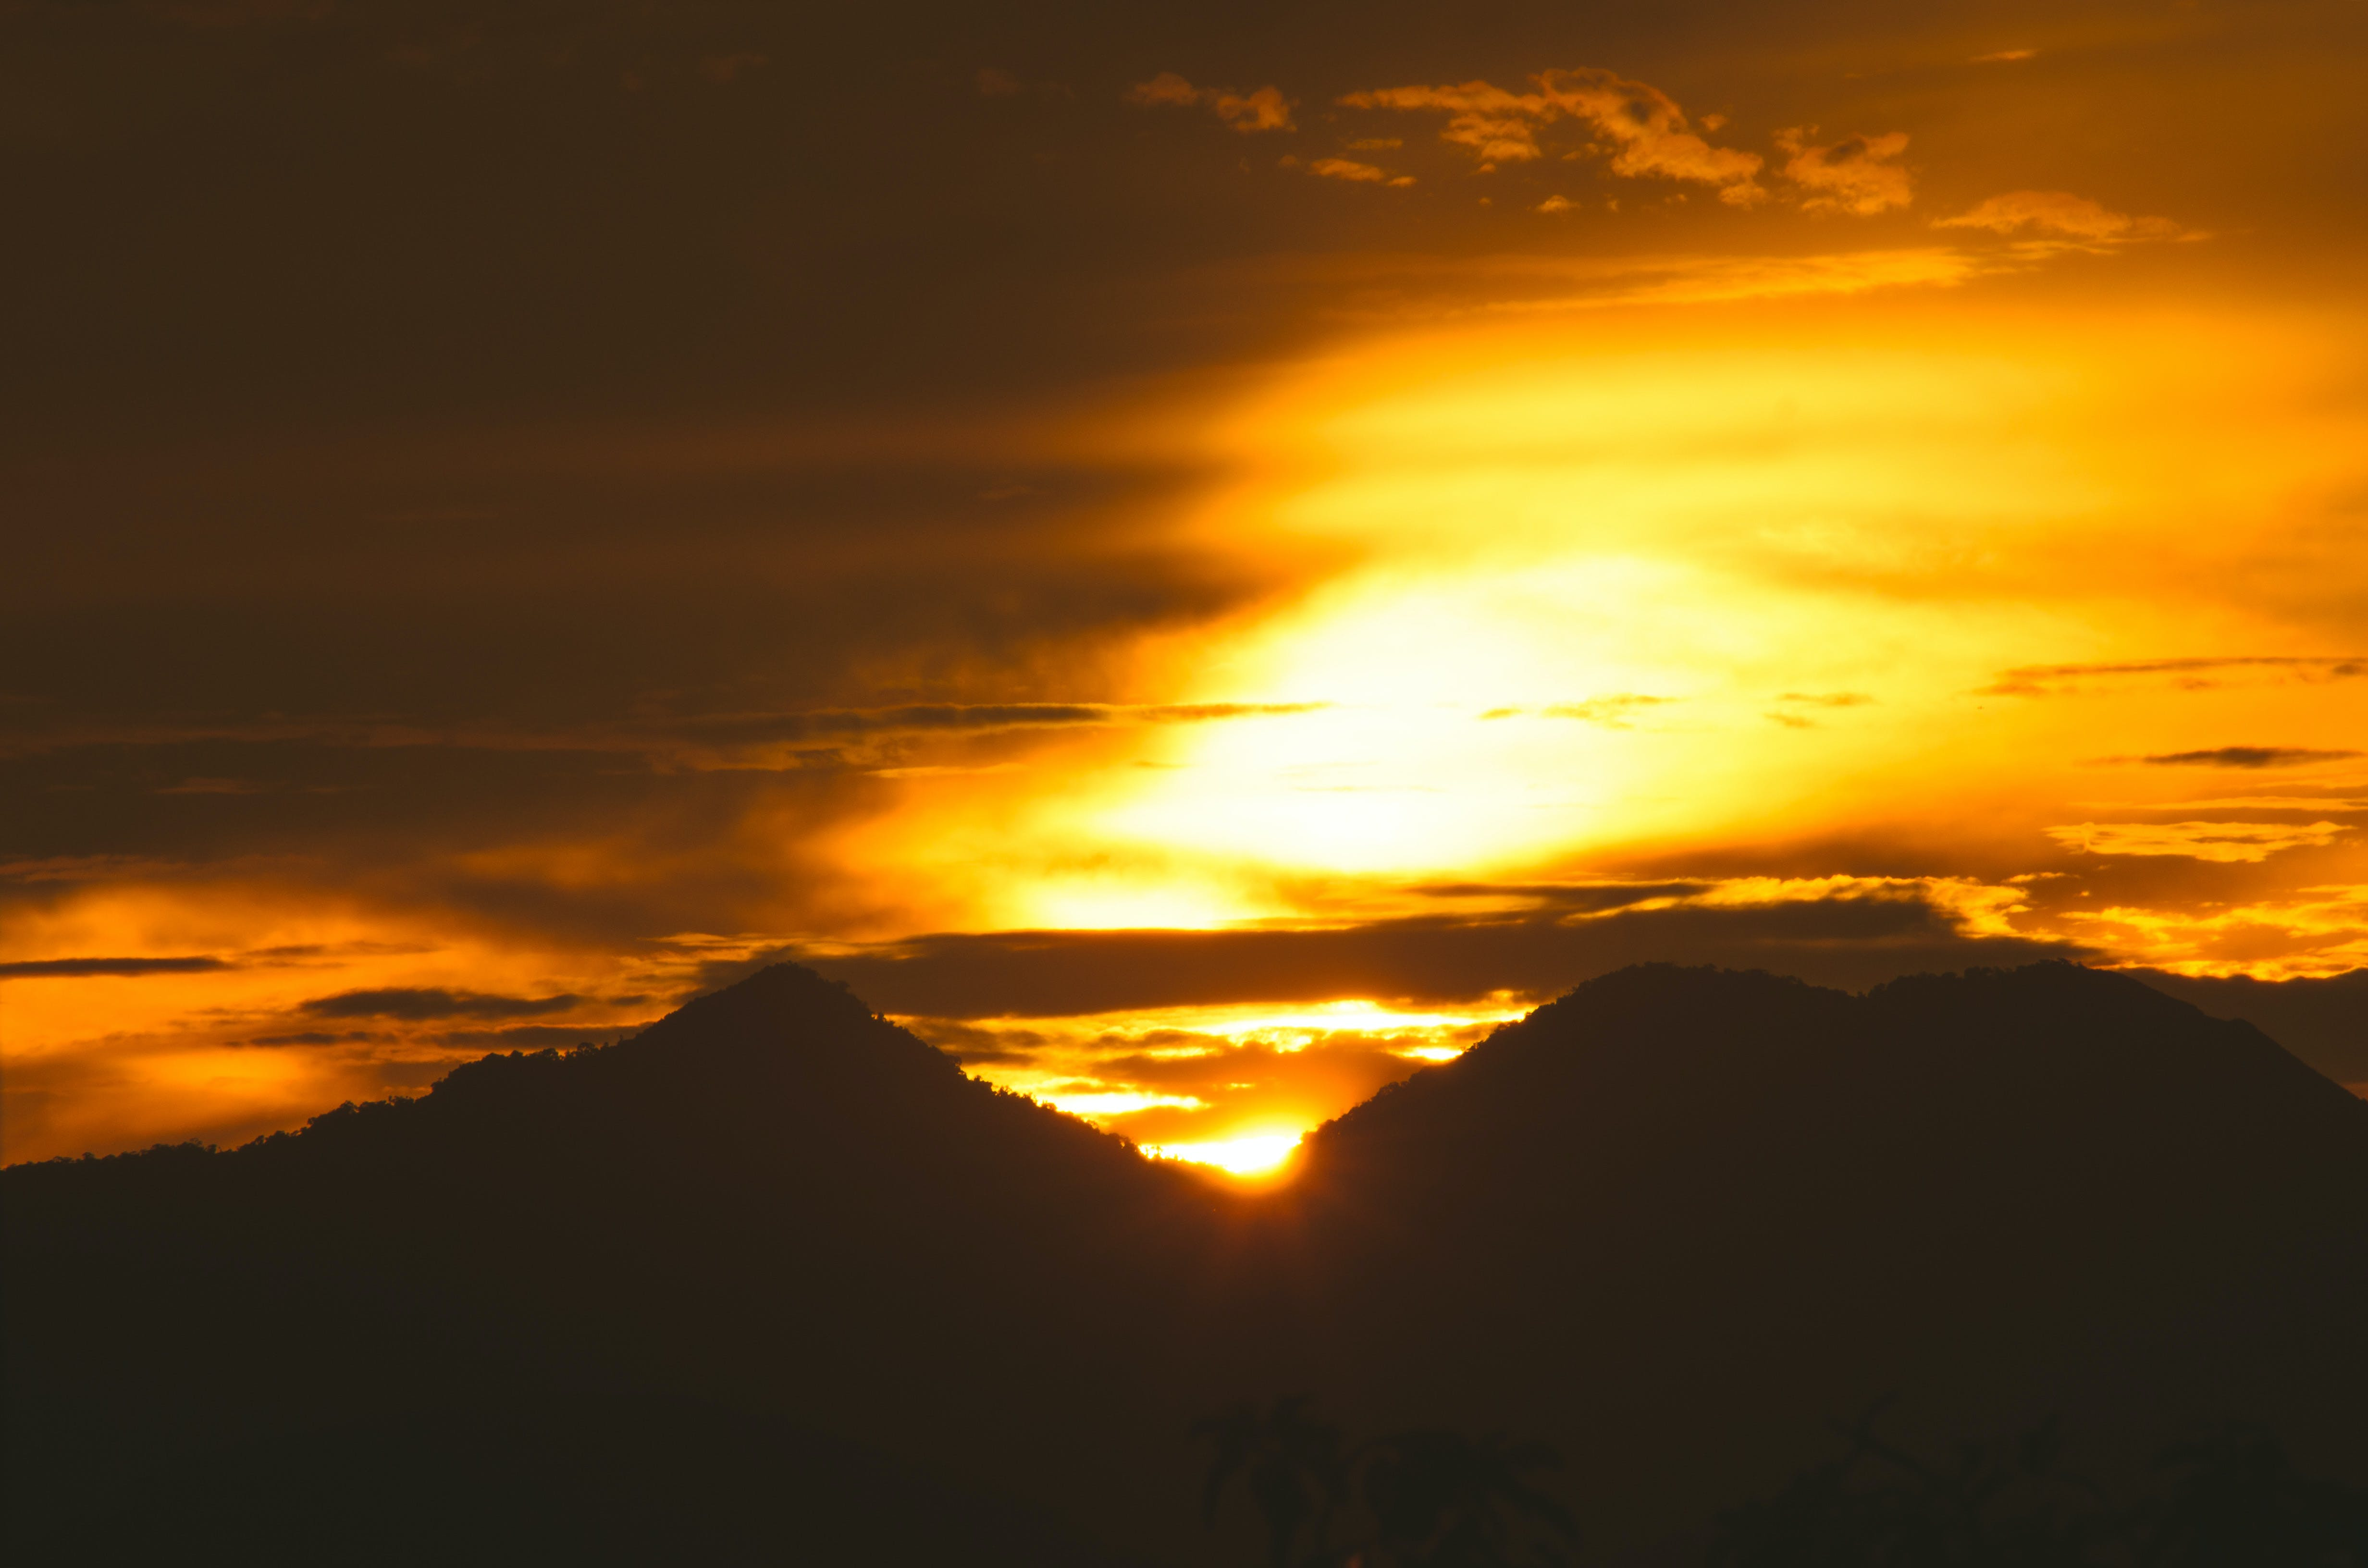 Free stock photo of mountains, sunset, golden hour, natural light